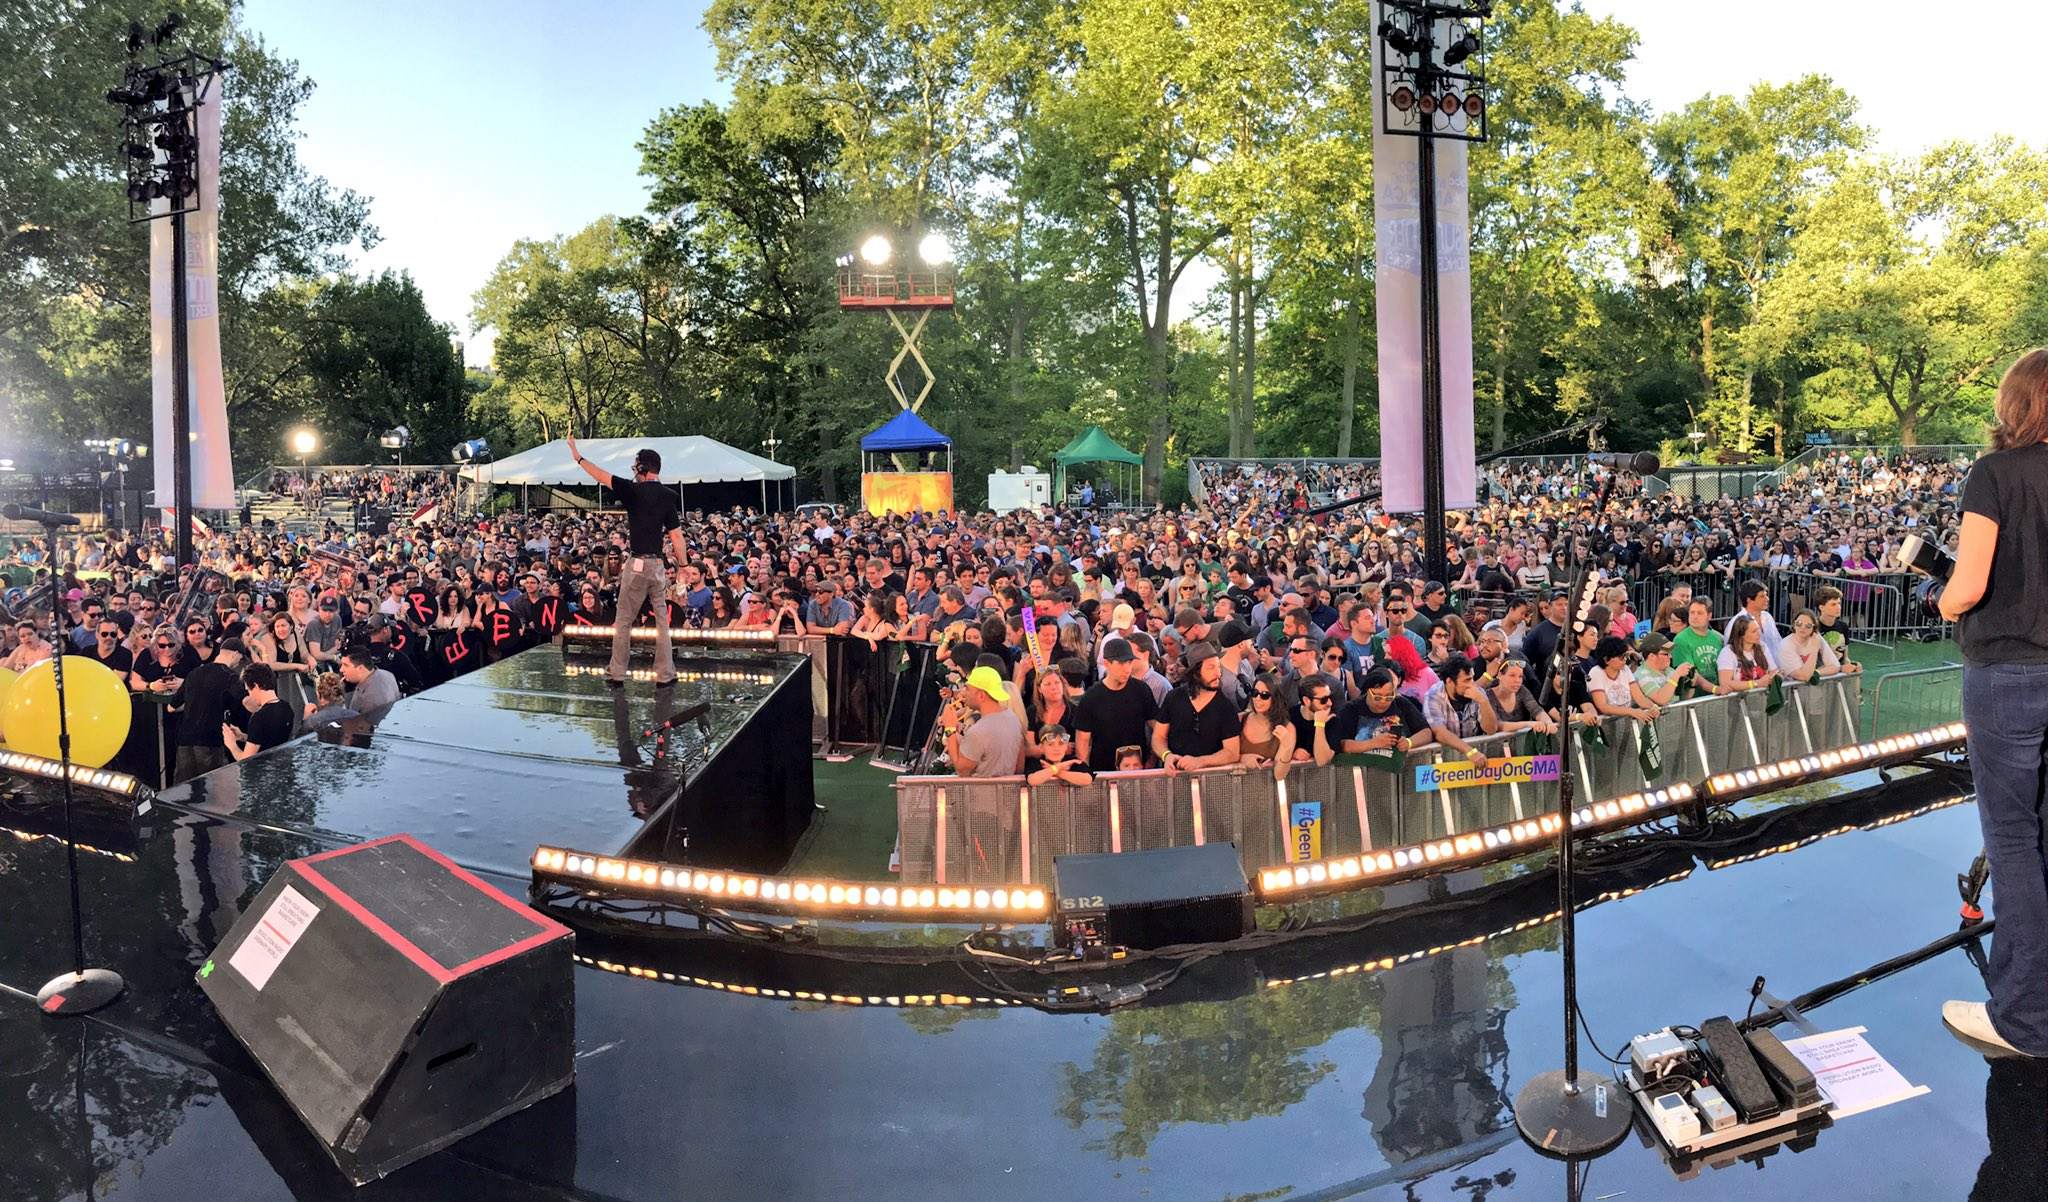 The Park is already packed and ready for @GreenDay this morning! #GreenDayOnGMA https://t.co/a0g59BmUok